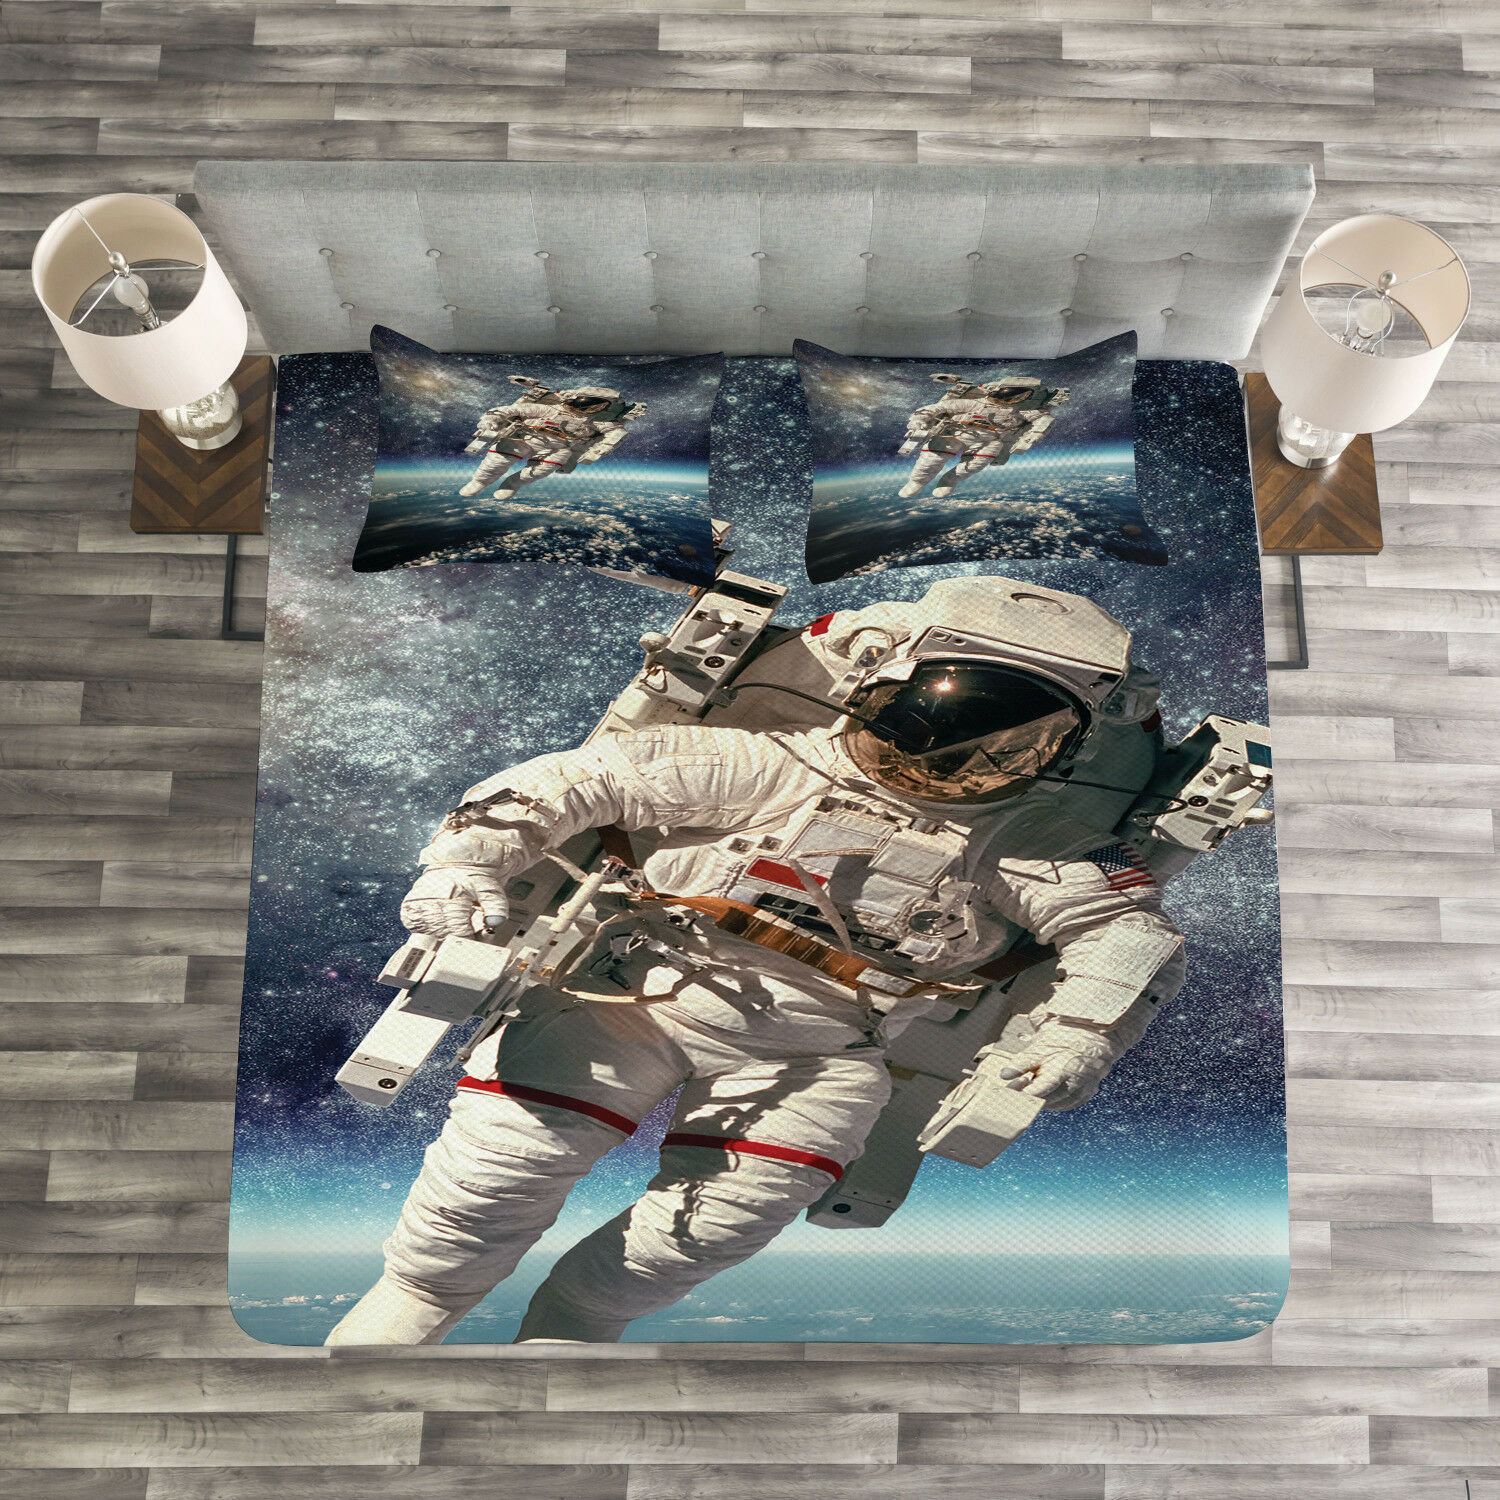 Galaxy Quilted Bedspread & Pillow Shams Set, Astronaut in Outer Space Print